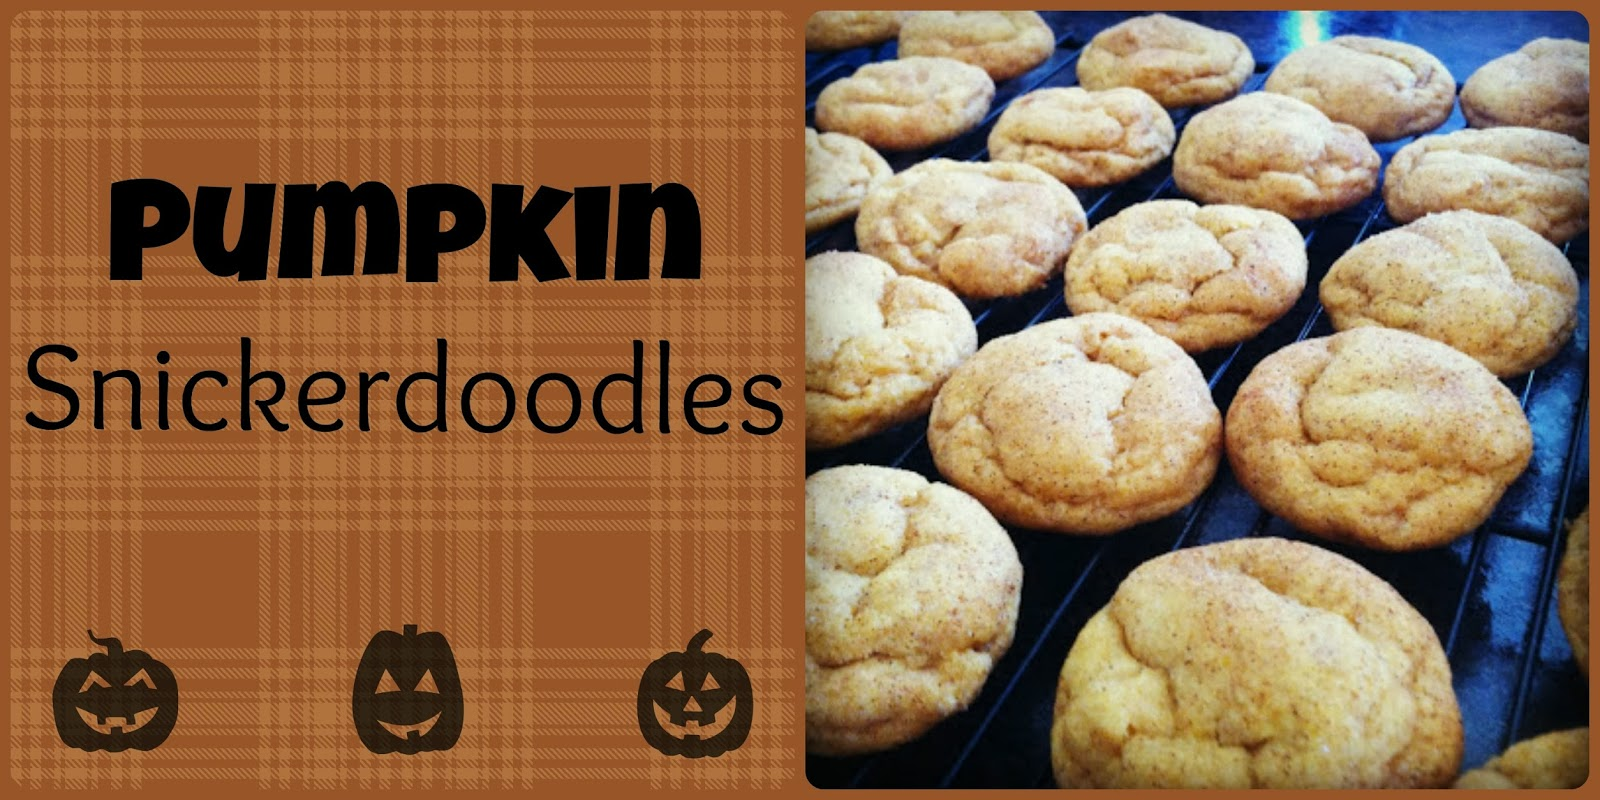 Pumpkin Snickerdoodles | Bits of Everything